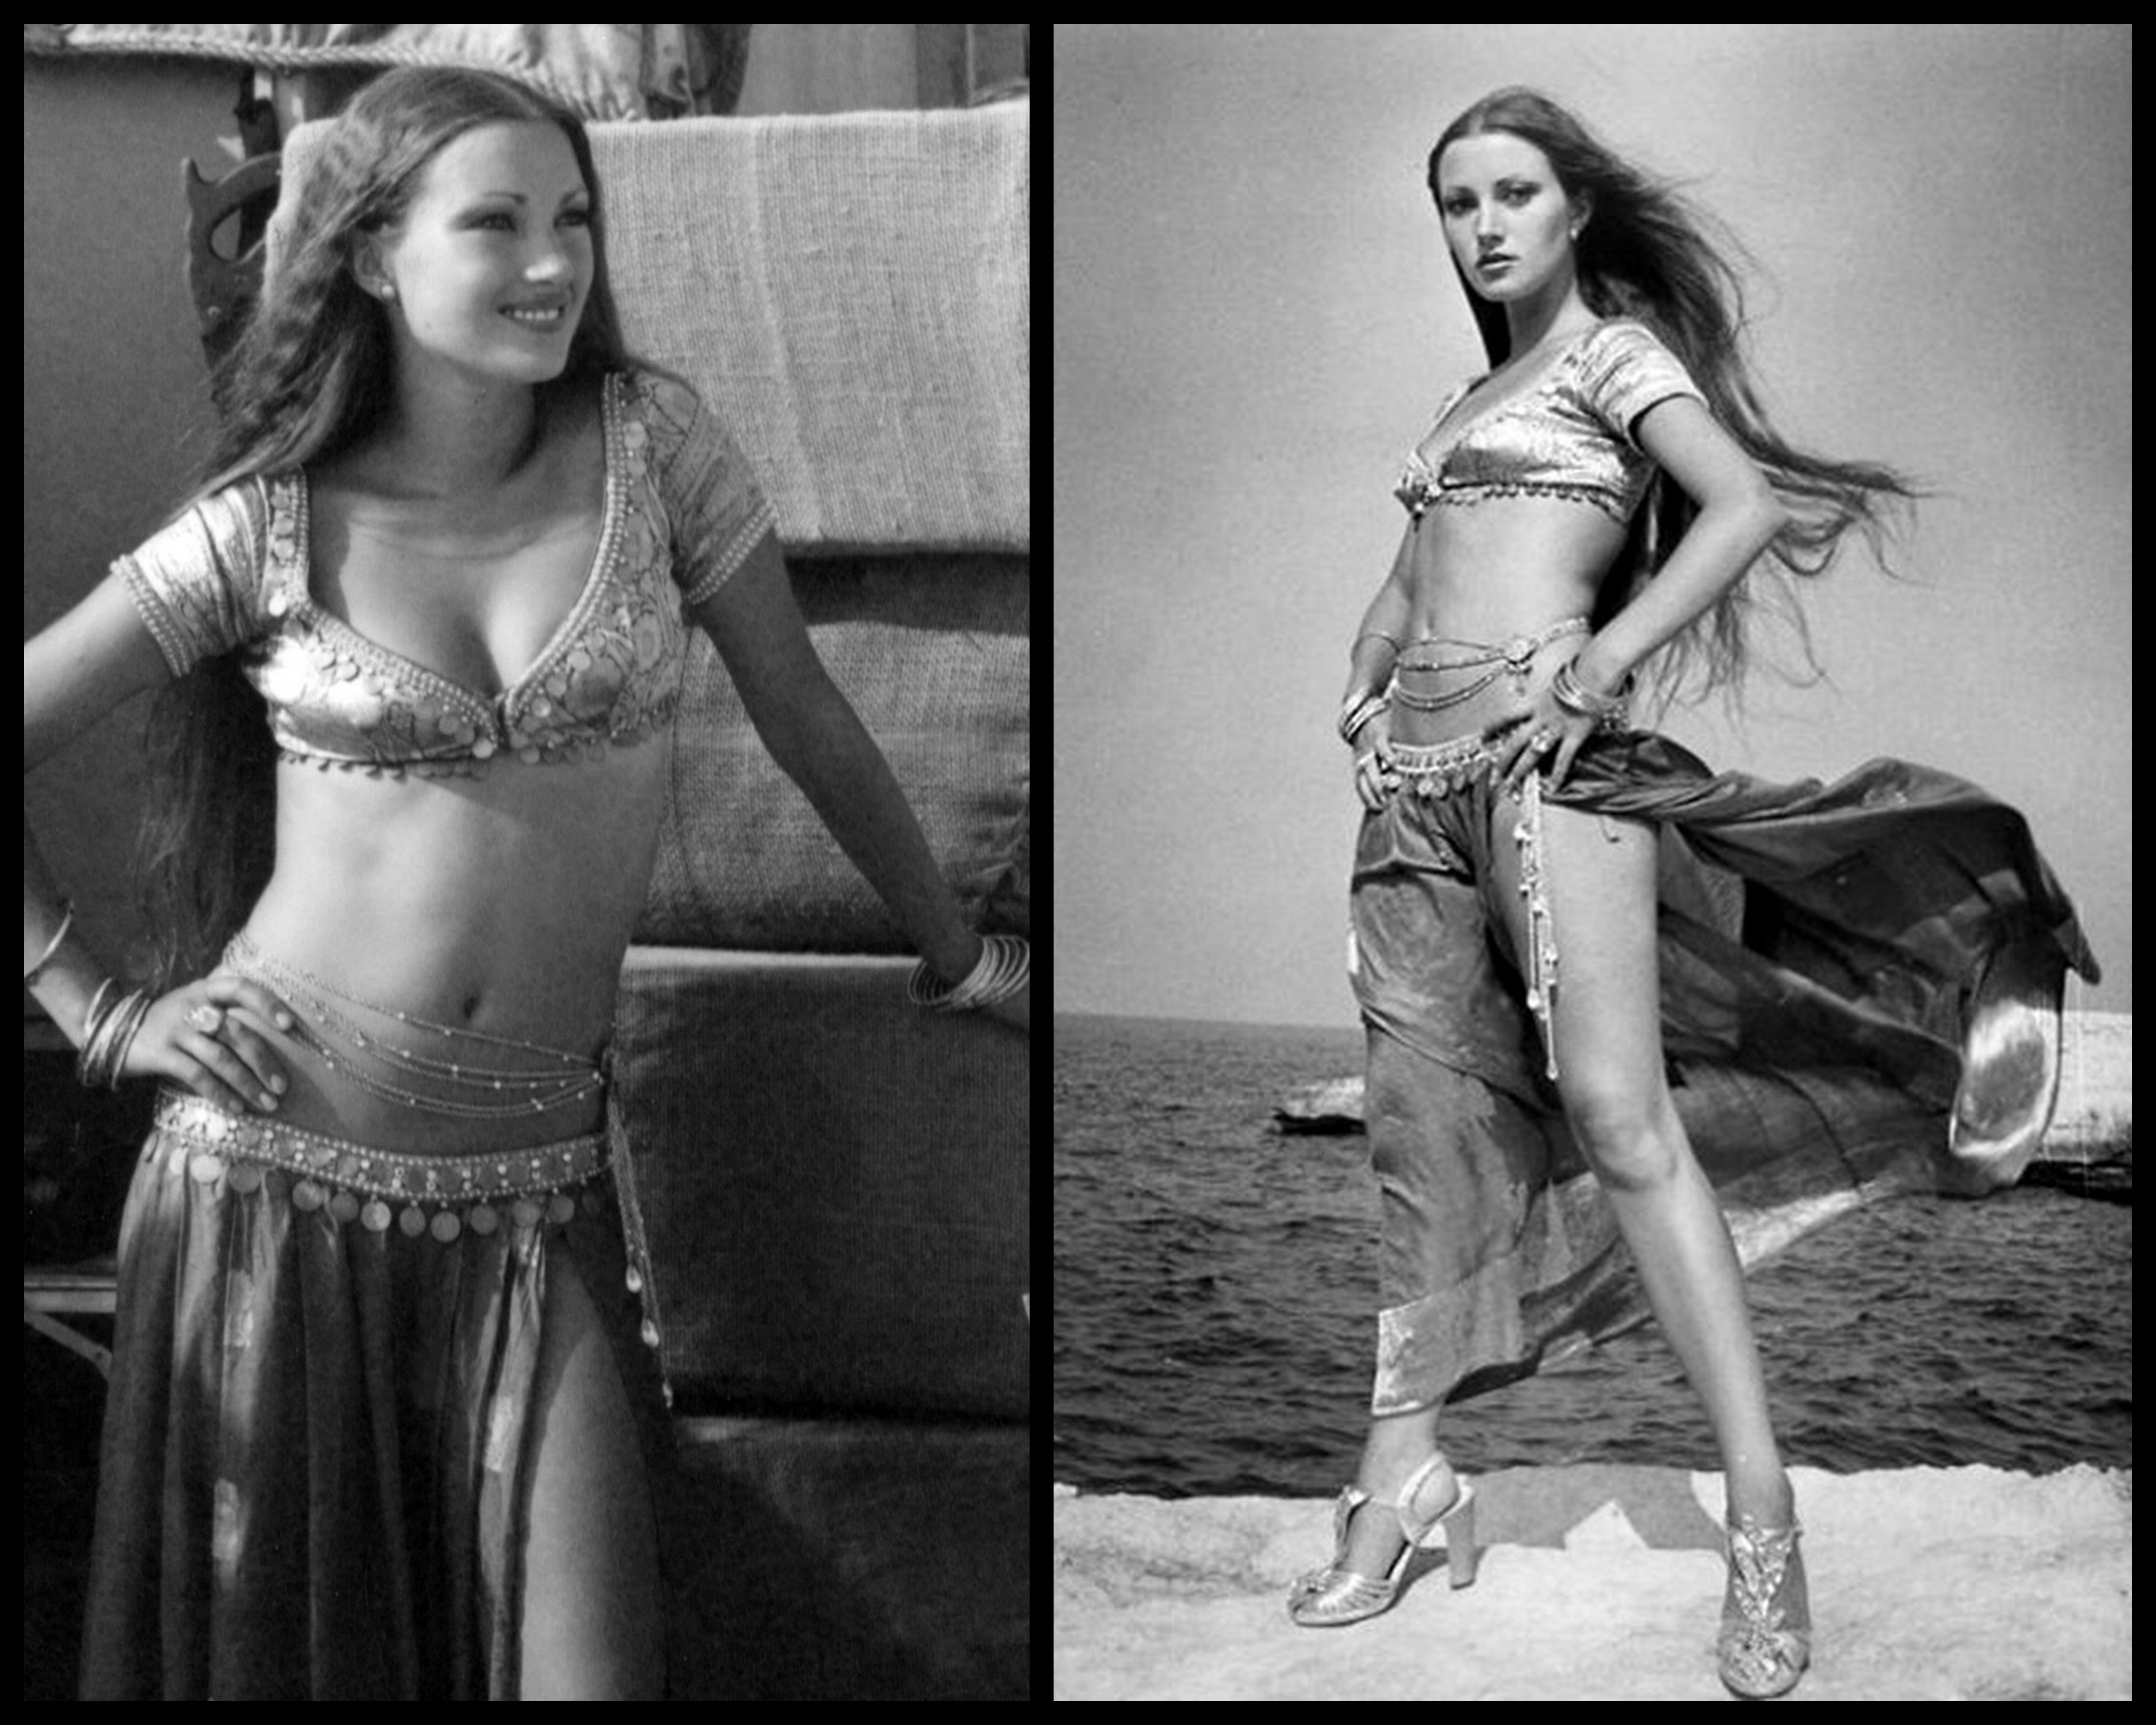 1977-jane-seymour-as-the-princess-farah-in-sinbad-and-the-eye-of-the-tiger.jpg